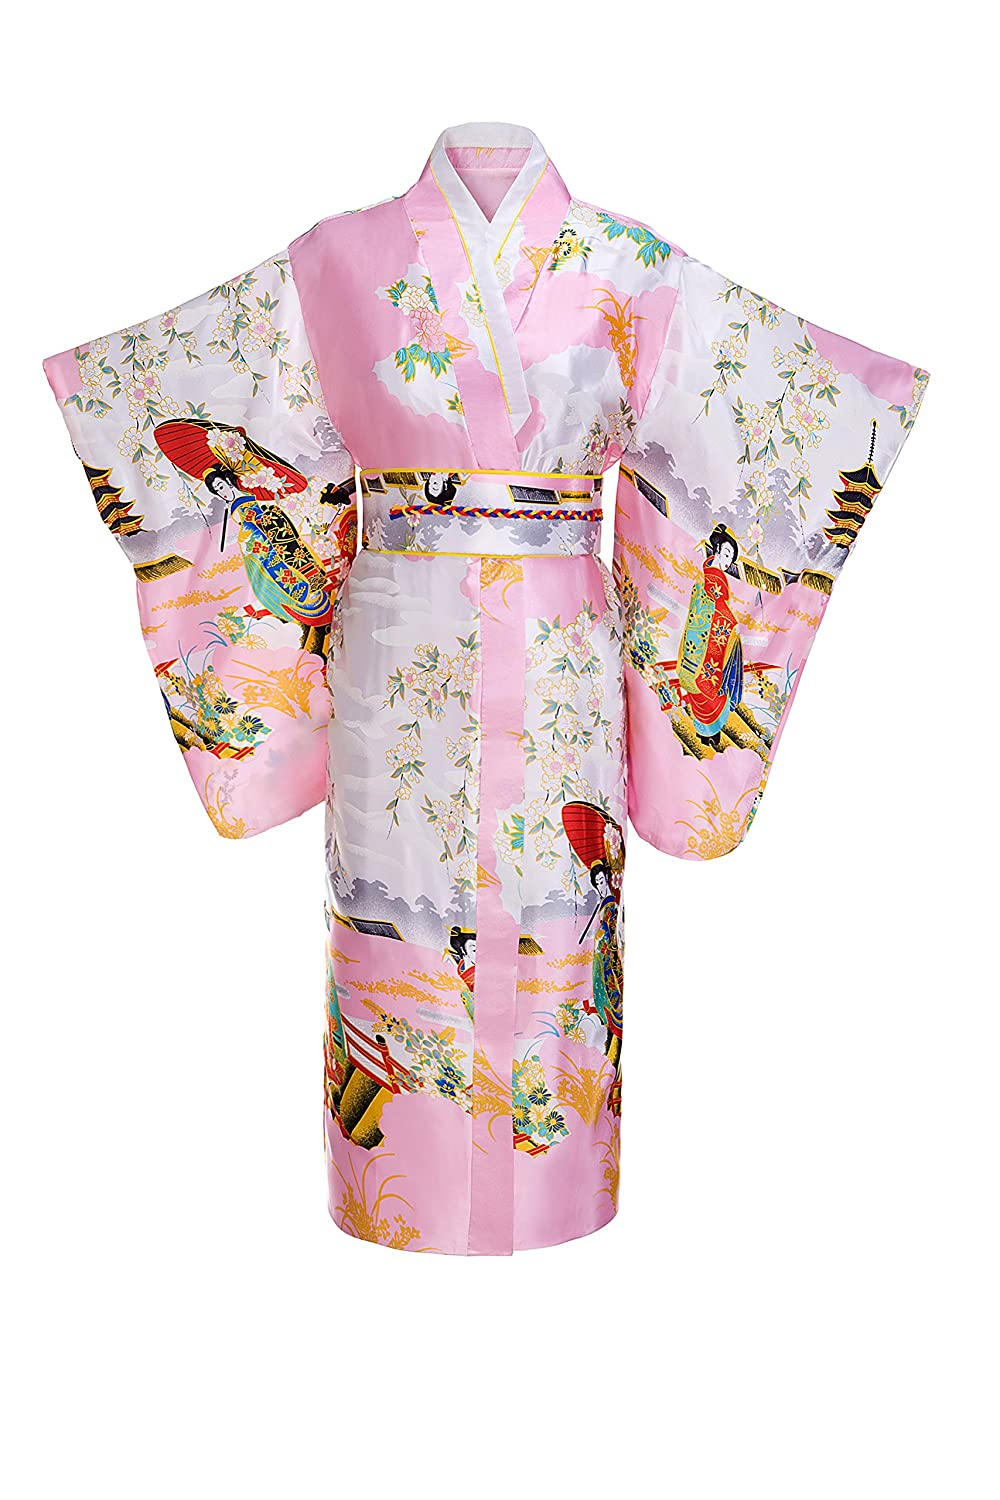 Joy Bridalc Yukata Women's Gorgeous Japanese Traditional Satin Kimono Robe Floral H Free Size Dec16-tradition floral H